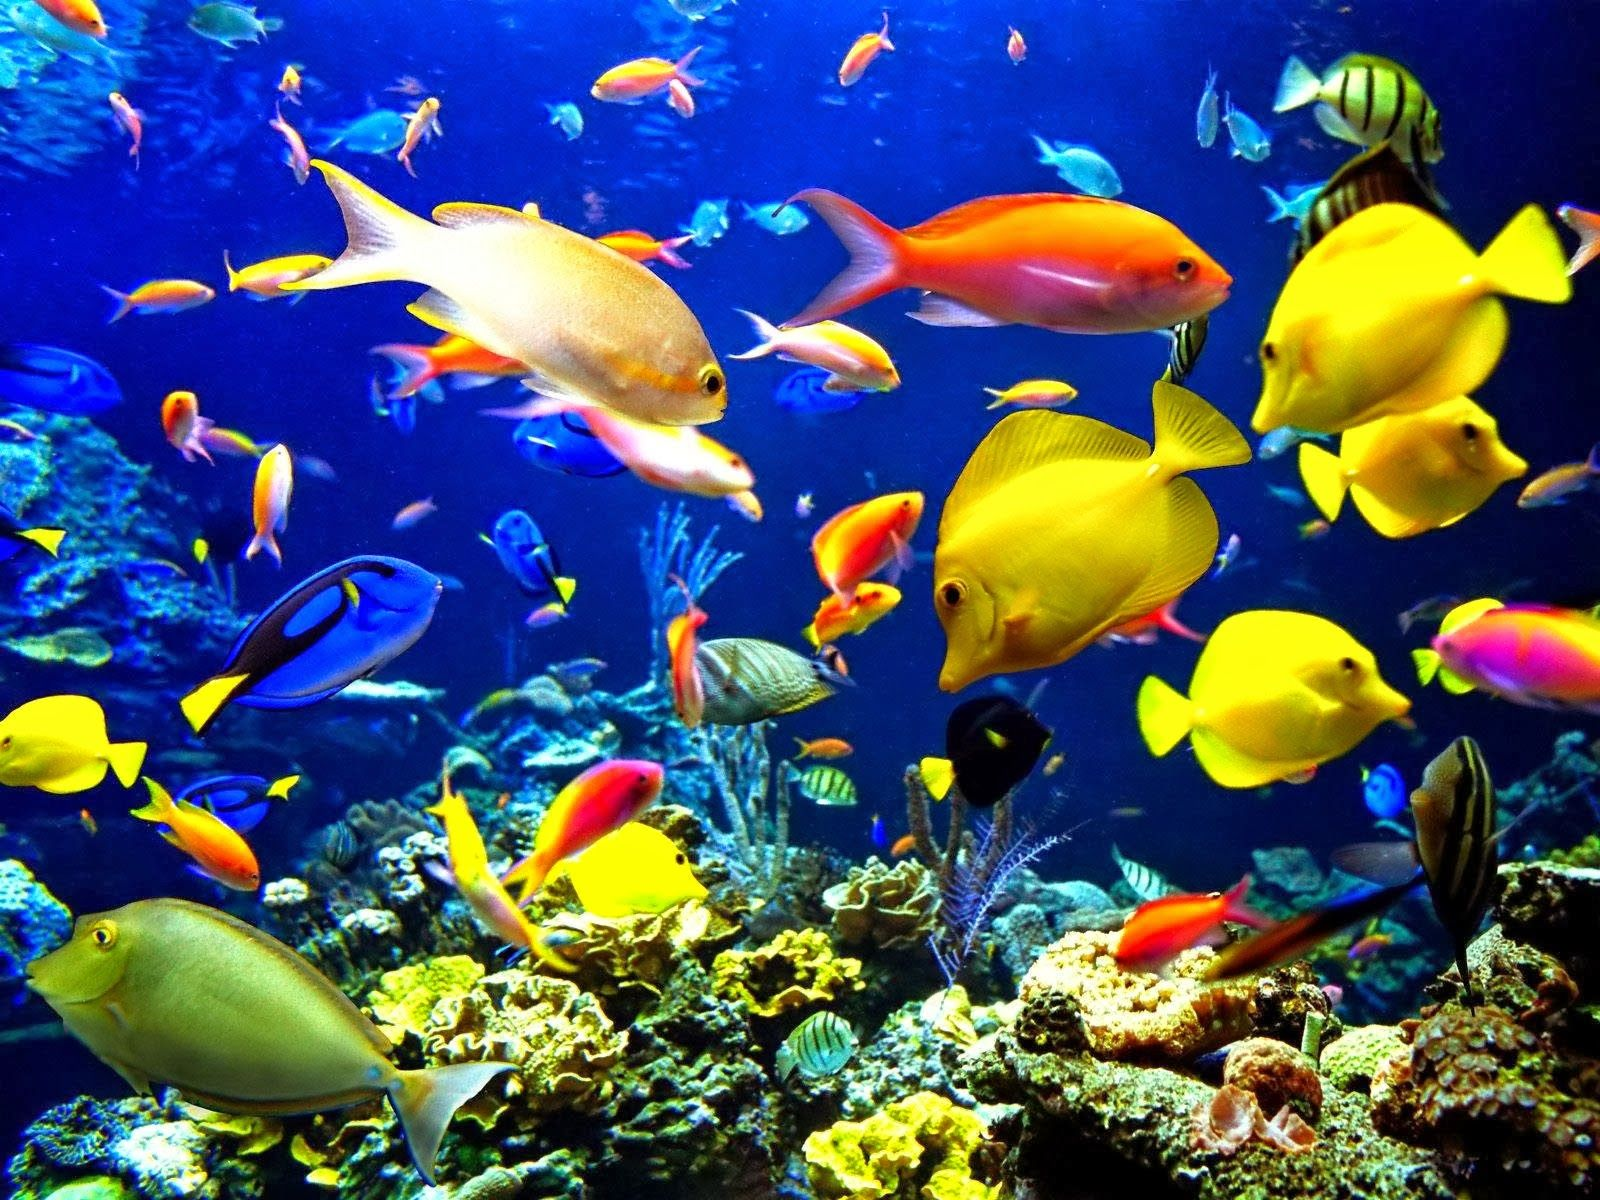 3d Moving Wallpaper Background Free Download Fish Wallpaper Sea Animals Underwater Wallpaper